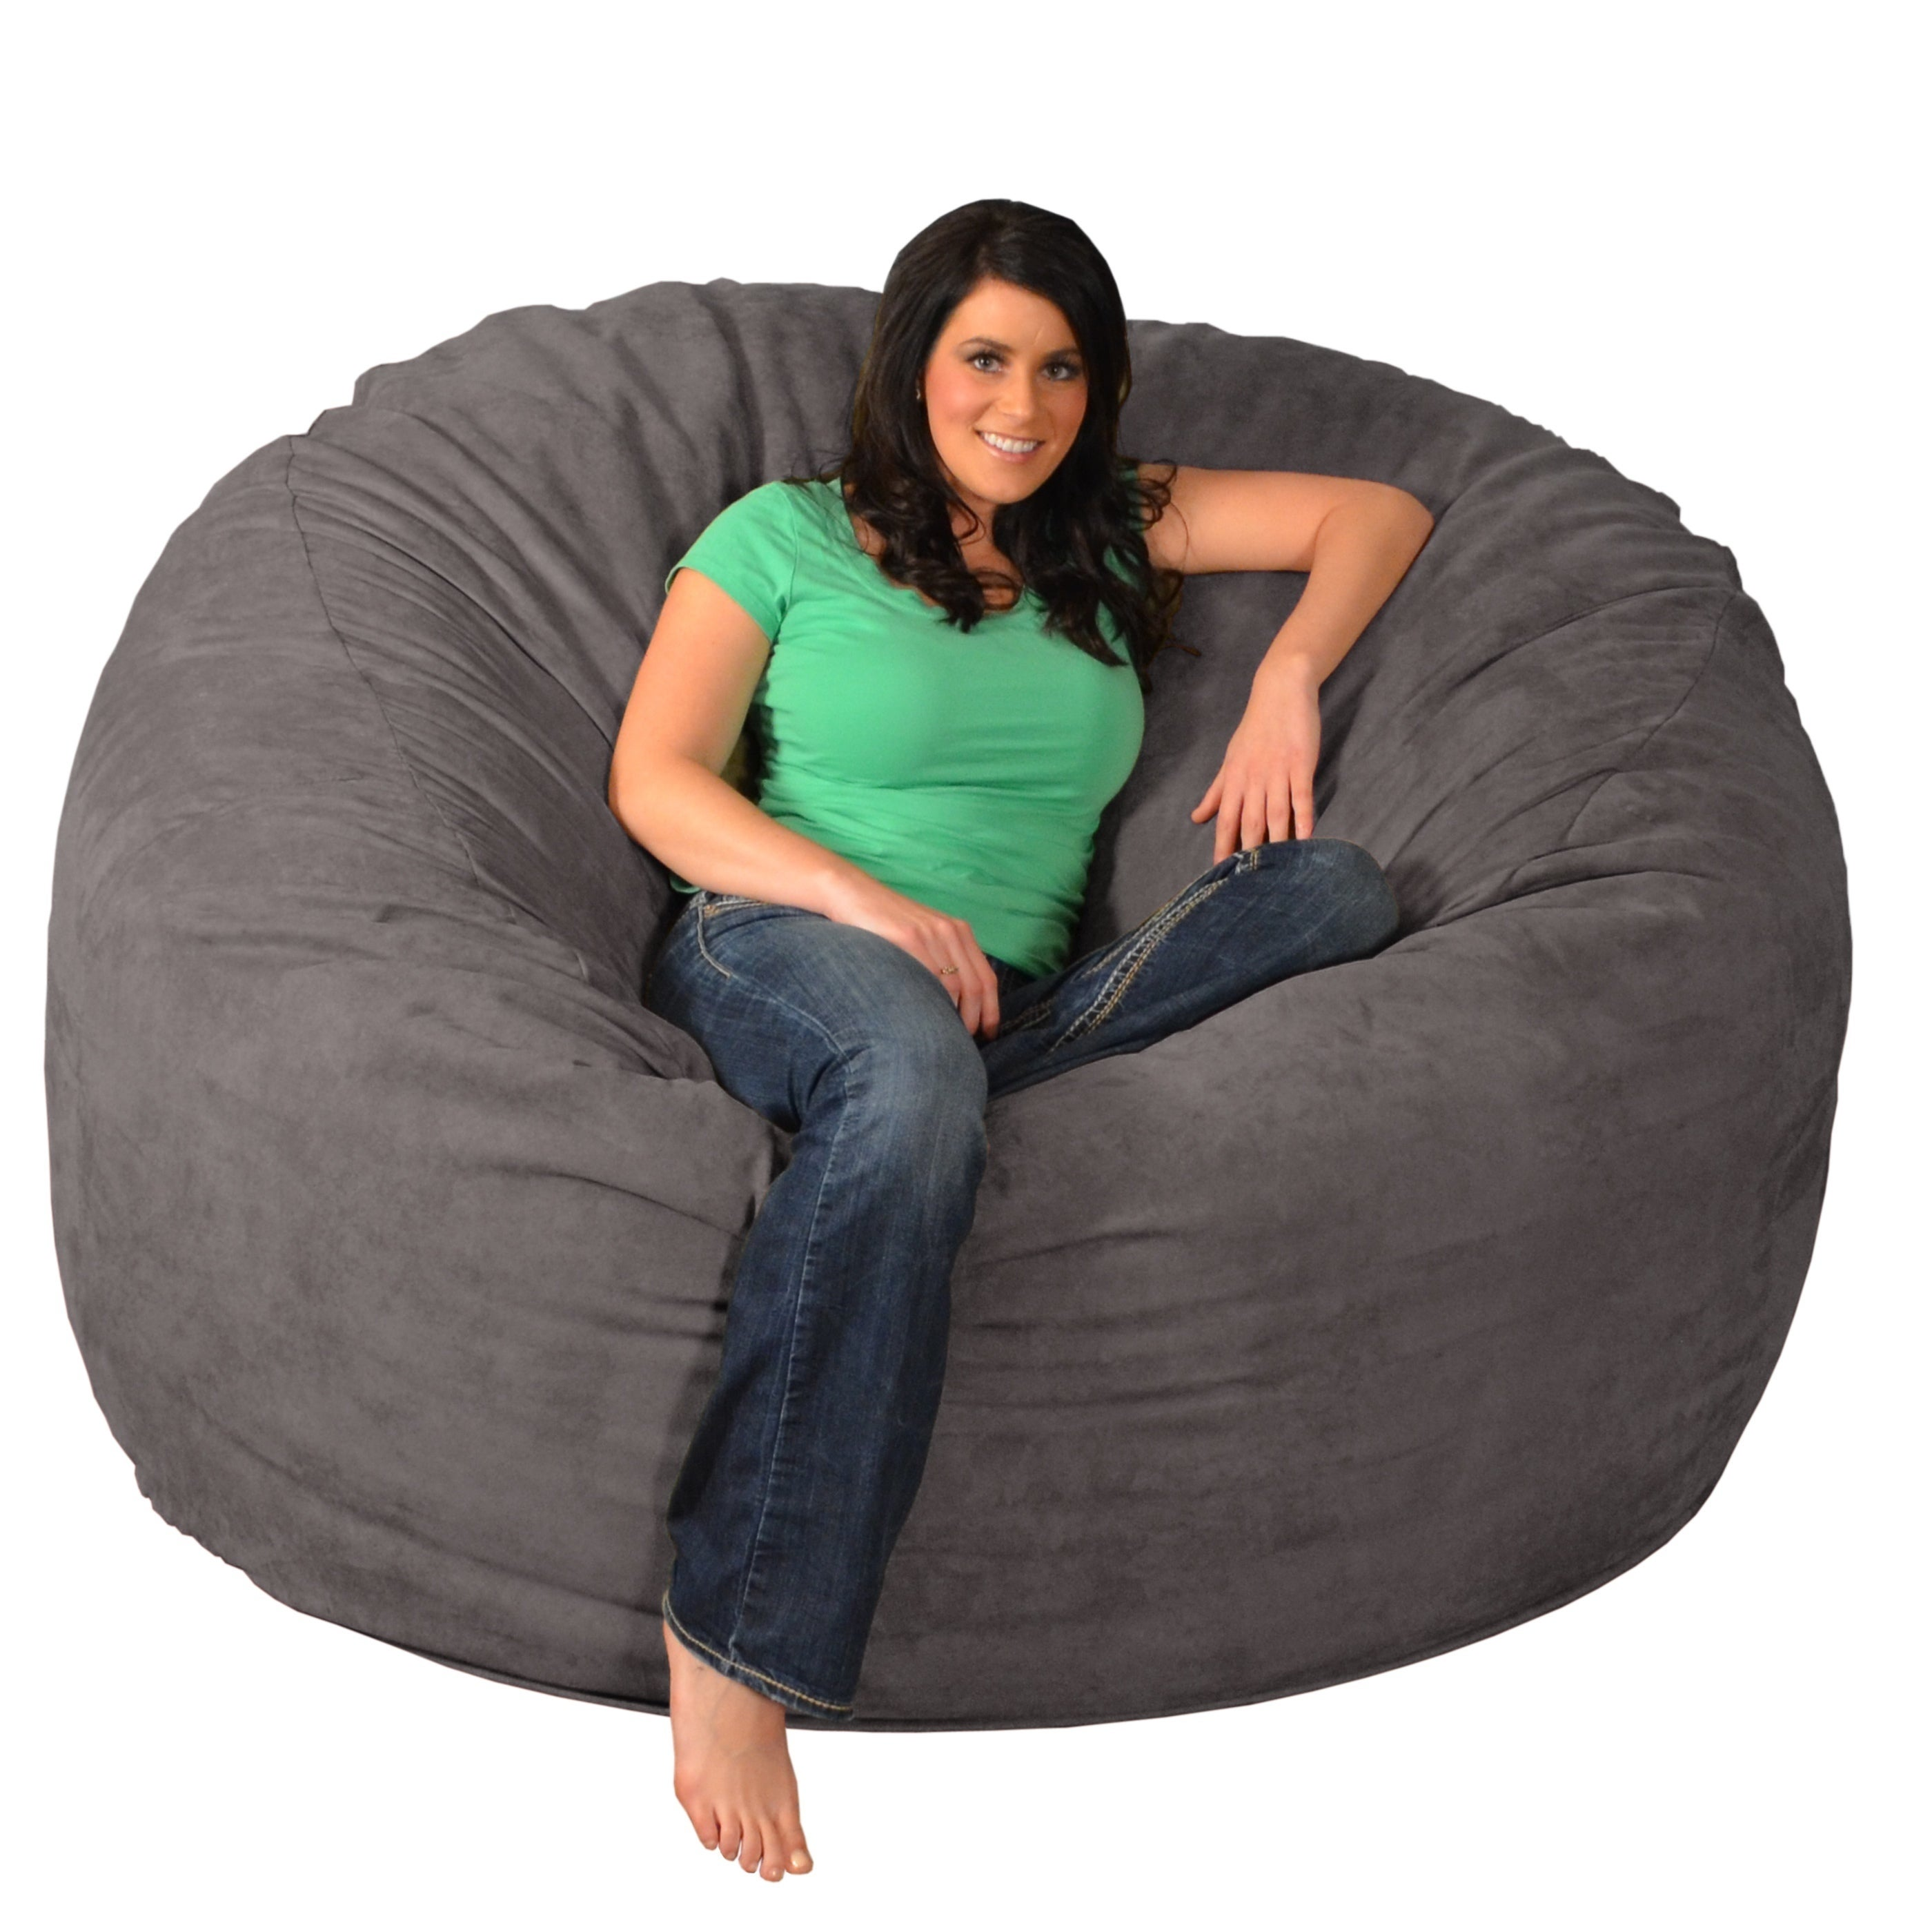 Beau Shop Giant Memory Foam Bean Bag 6 Foot Chair   Free Shipping Today    Overstock.com   9936912